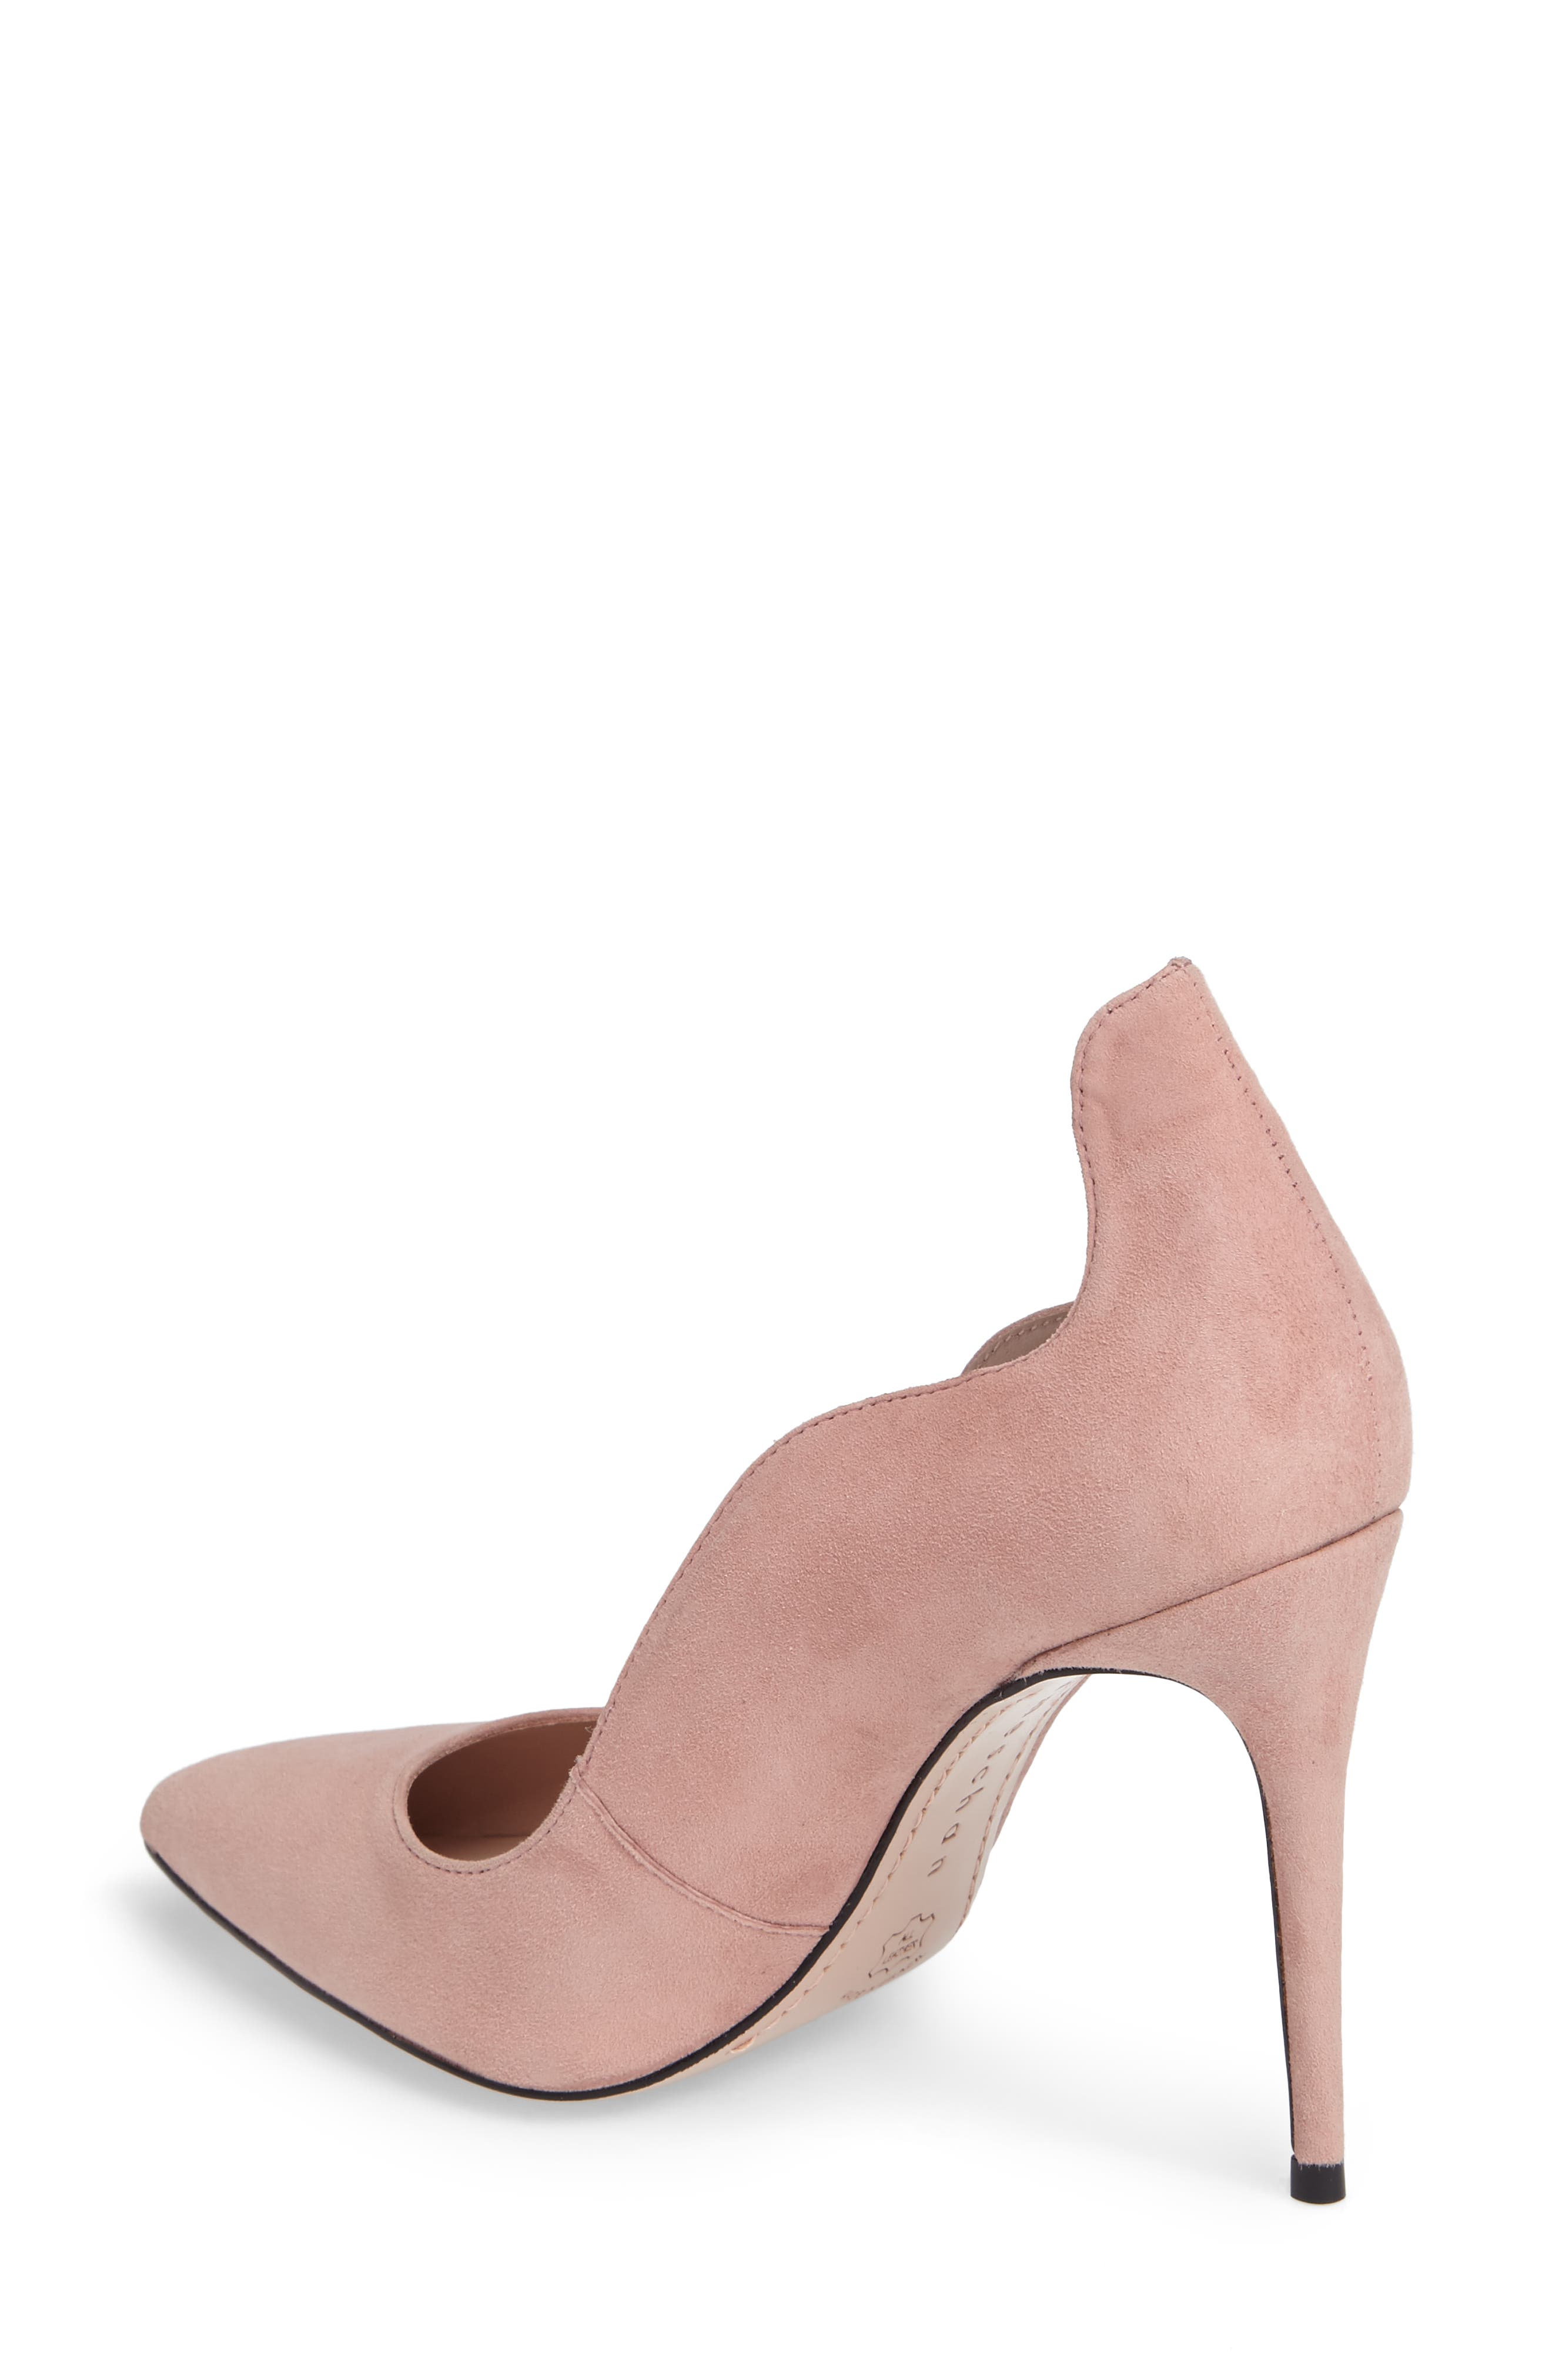 Anika Curvy Pump,                             Alternate thumbnail 2, color,                             Blush Suede